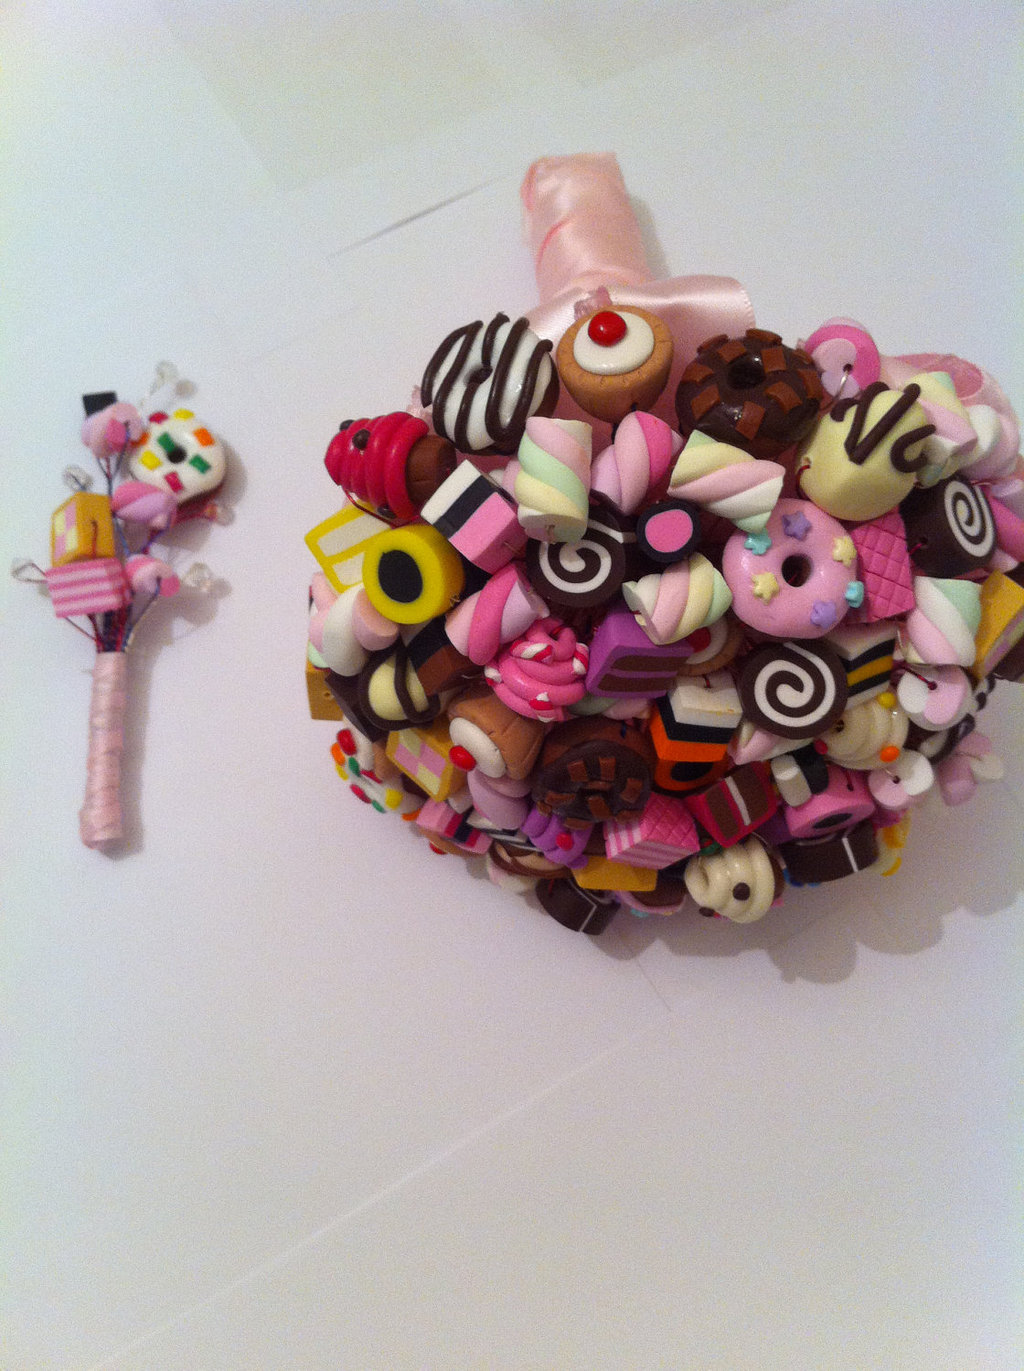 Sugary-sweet-wedding-decor-edible-handmade-weddings-candy-bouquet-boutonniere.full